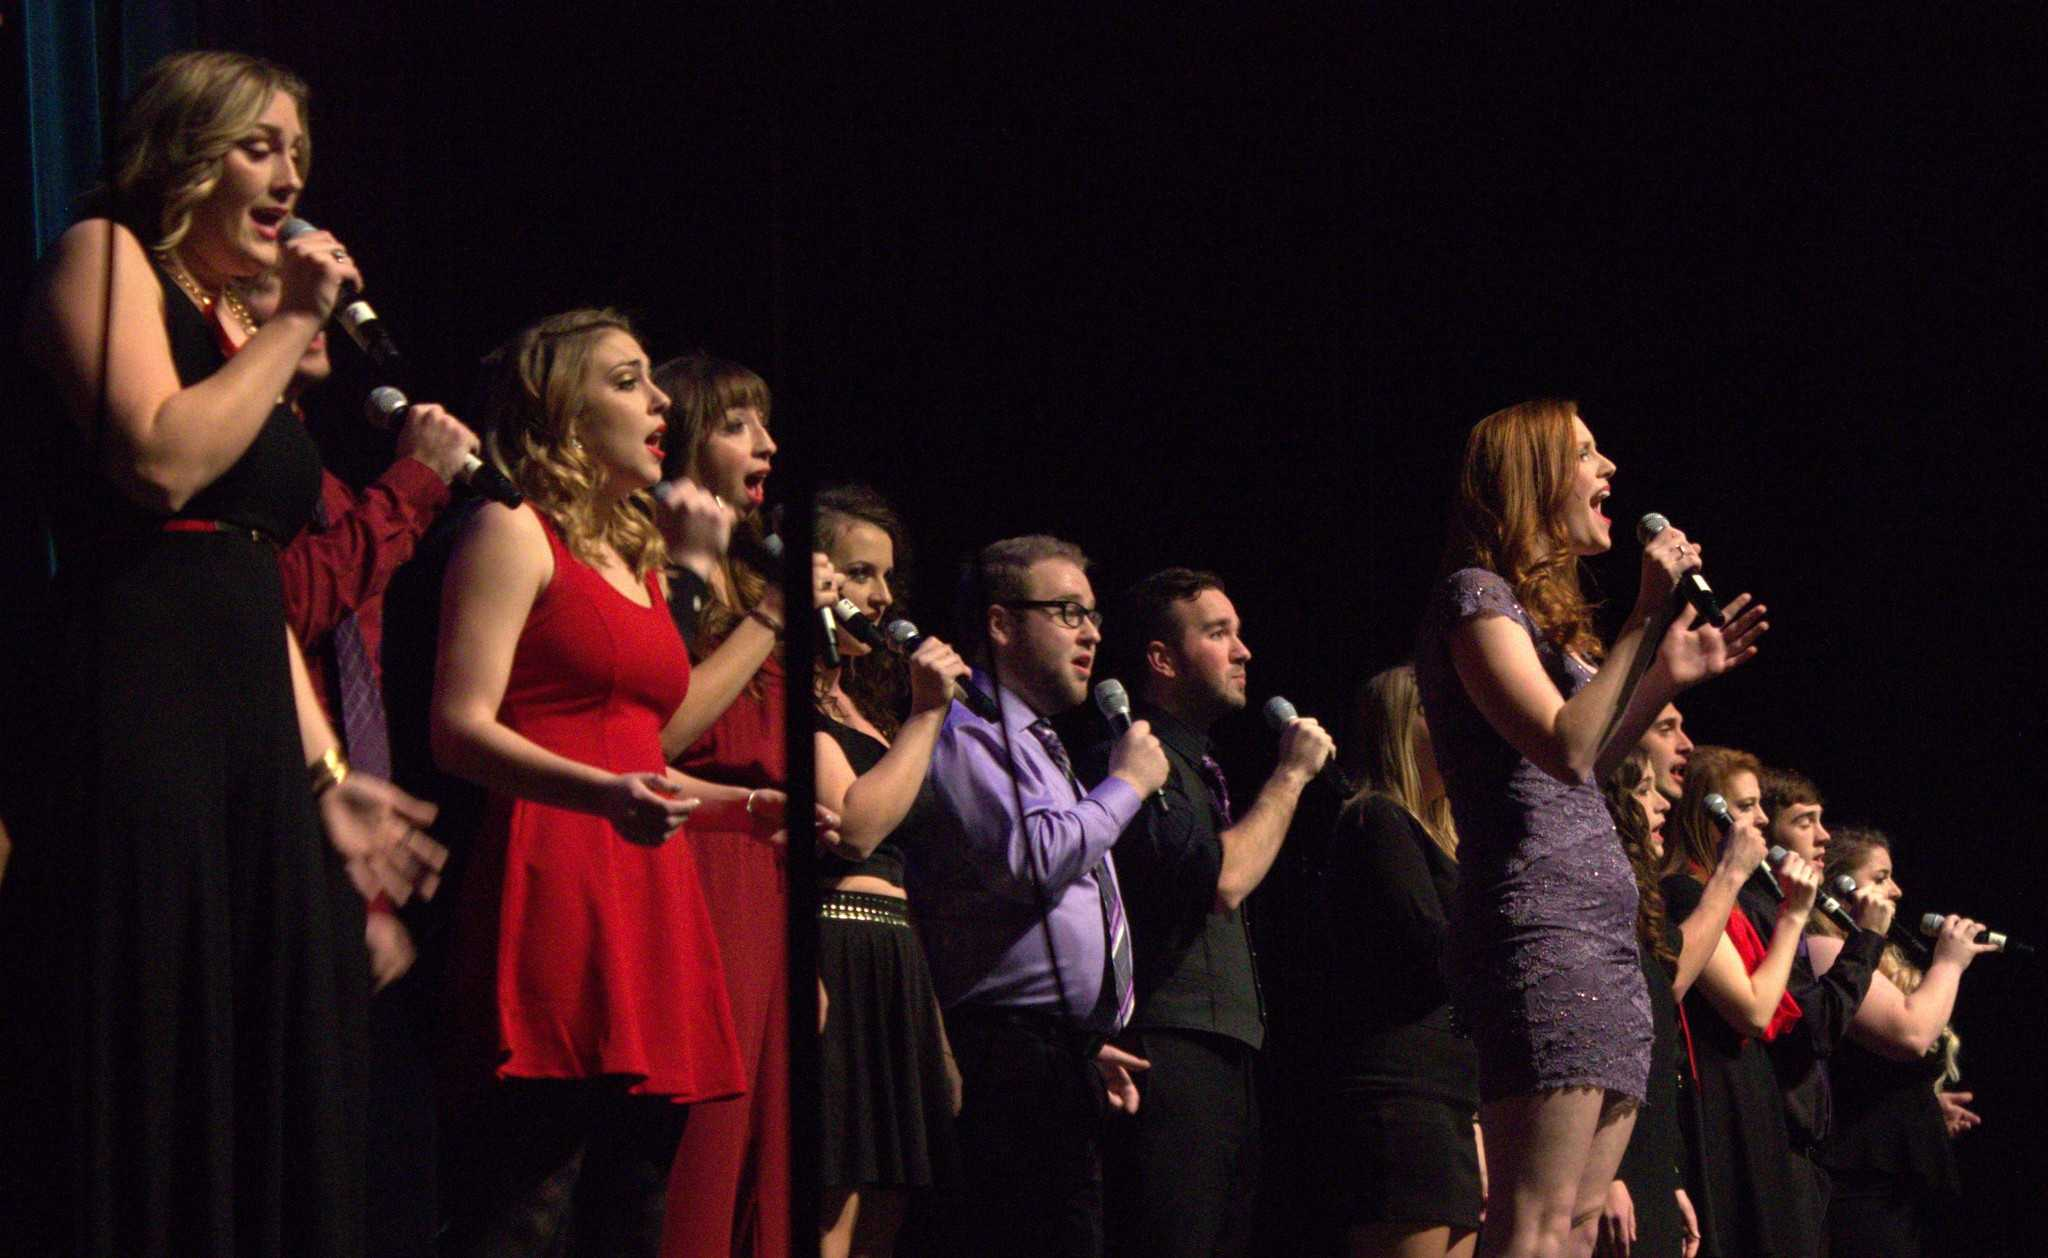 A+cappella+group+Enharmonix+performs+at+Acappellageddon+Sunday+night+at+the+Schaefer+Center+for+the+Performing+Arts.+Photo+by+Maggie+Davis++%7C++The+Appalachian